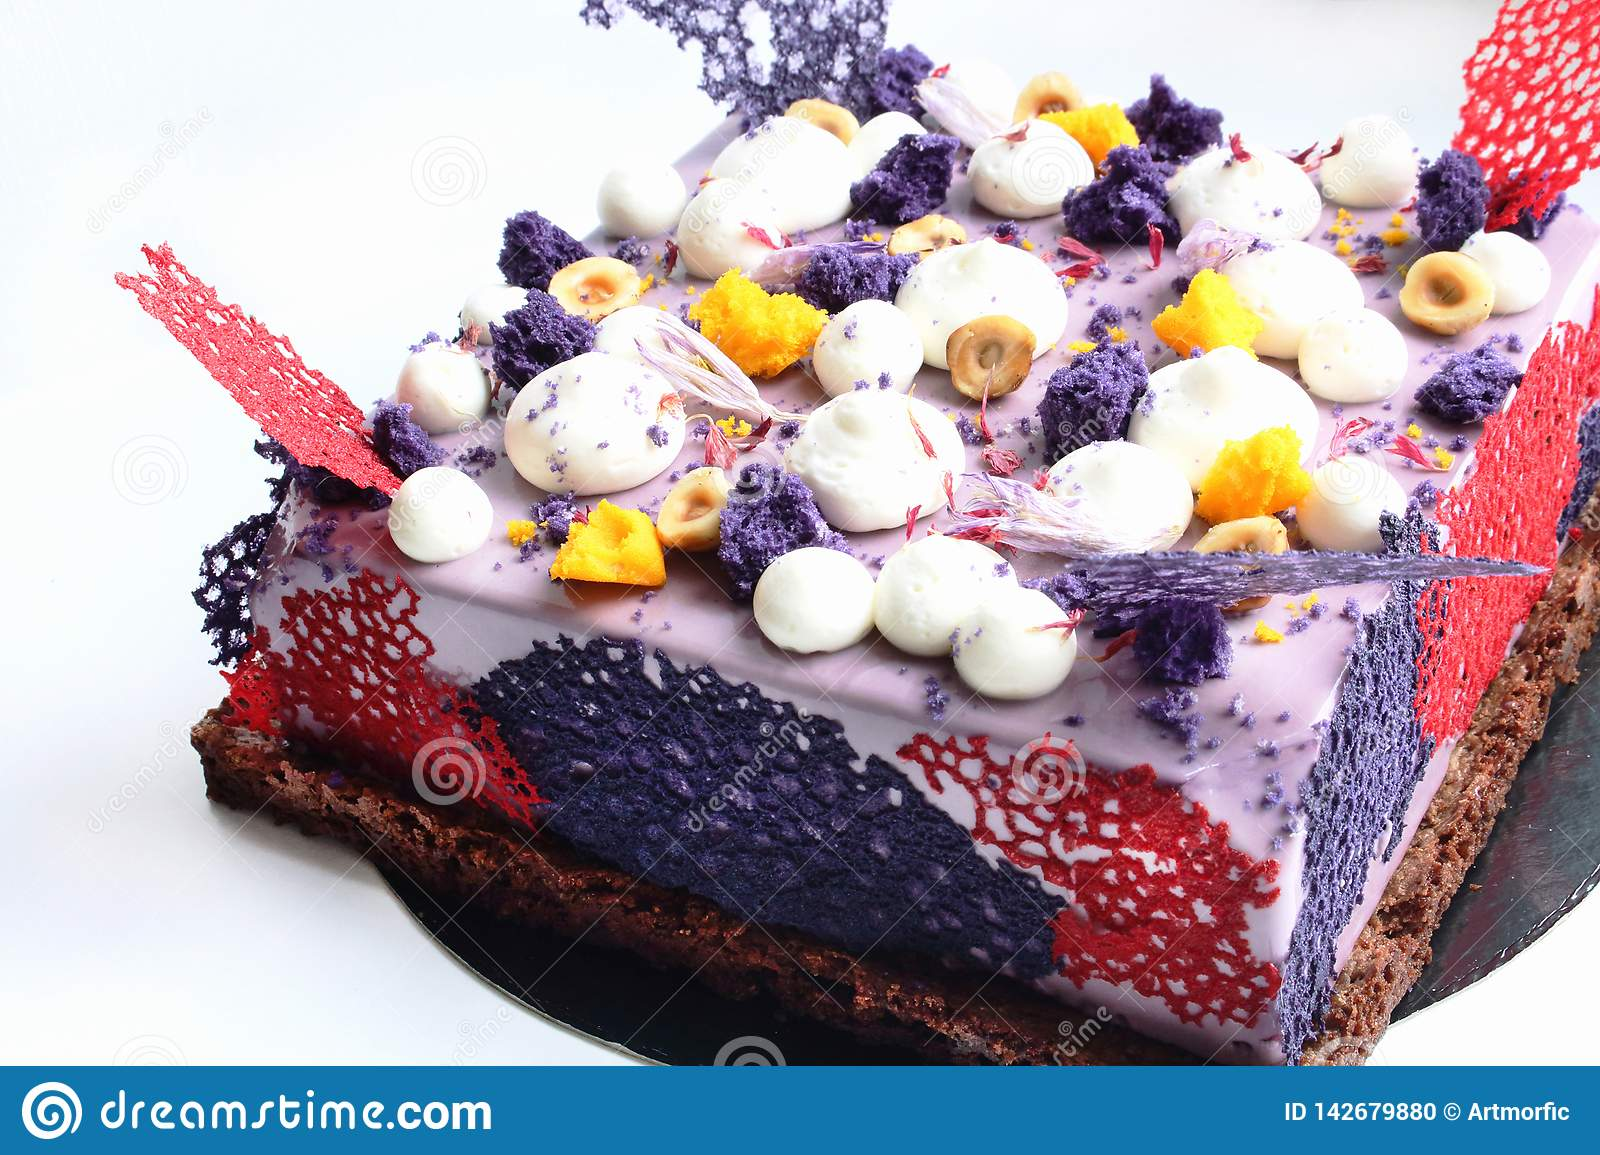 Purple square cake with shiny mirror glaze, cream, nuts and berries